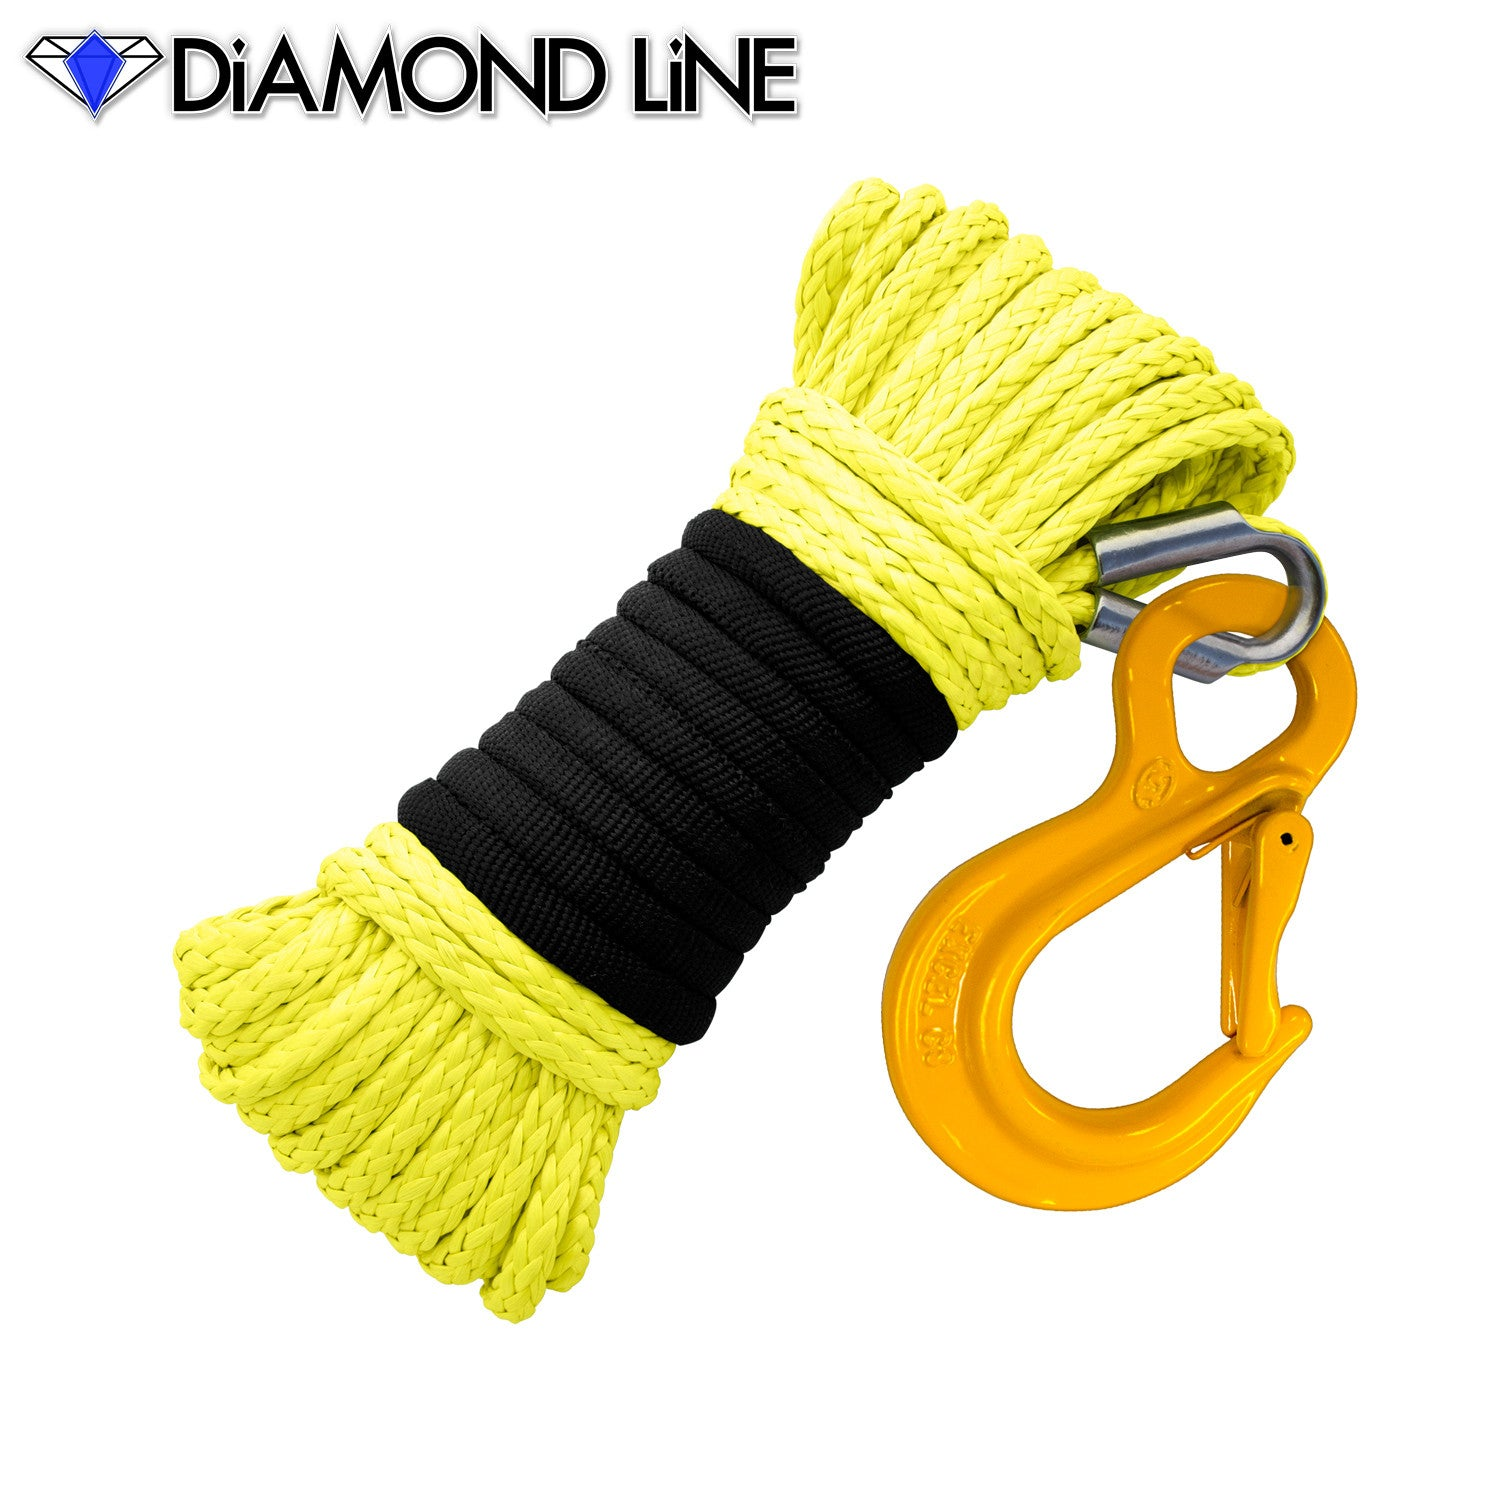 "3/16"" x 50' Diamond Line Winch Rope Mainline - Yellow with Hook."